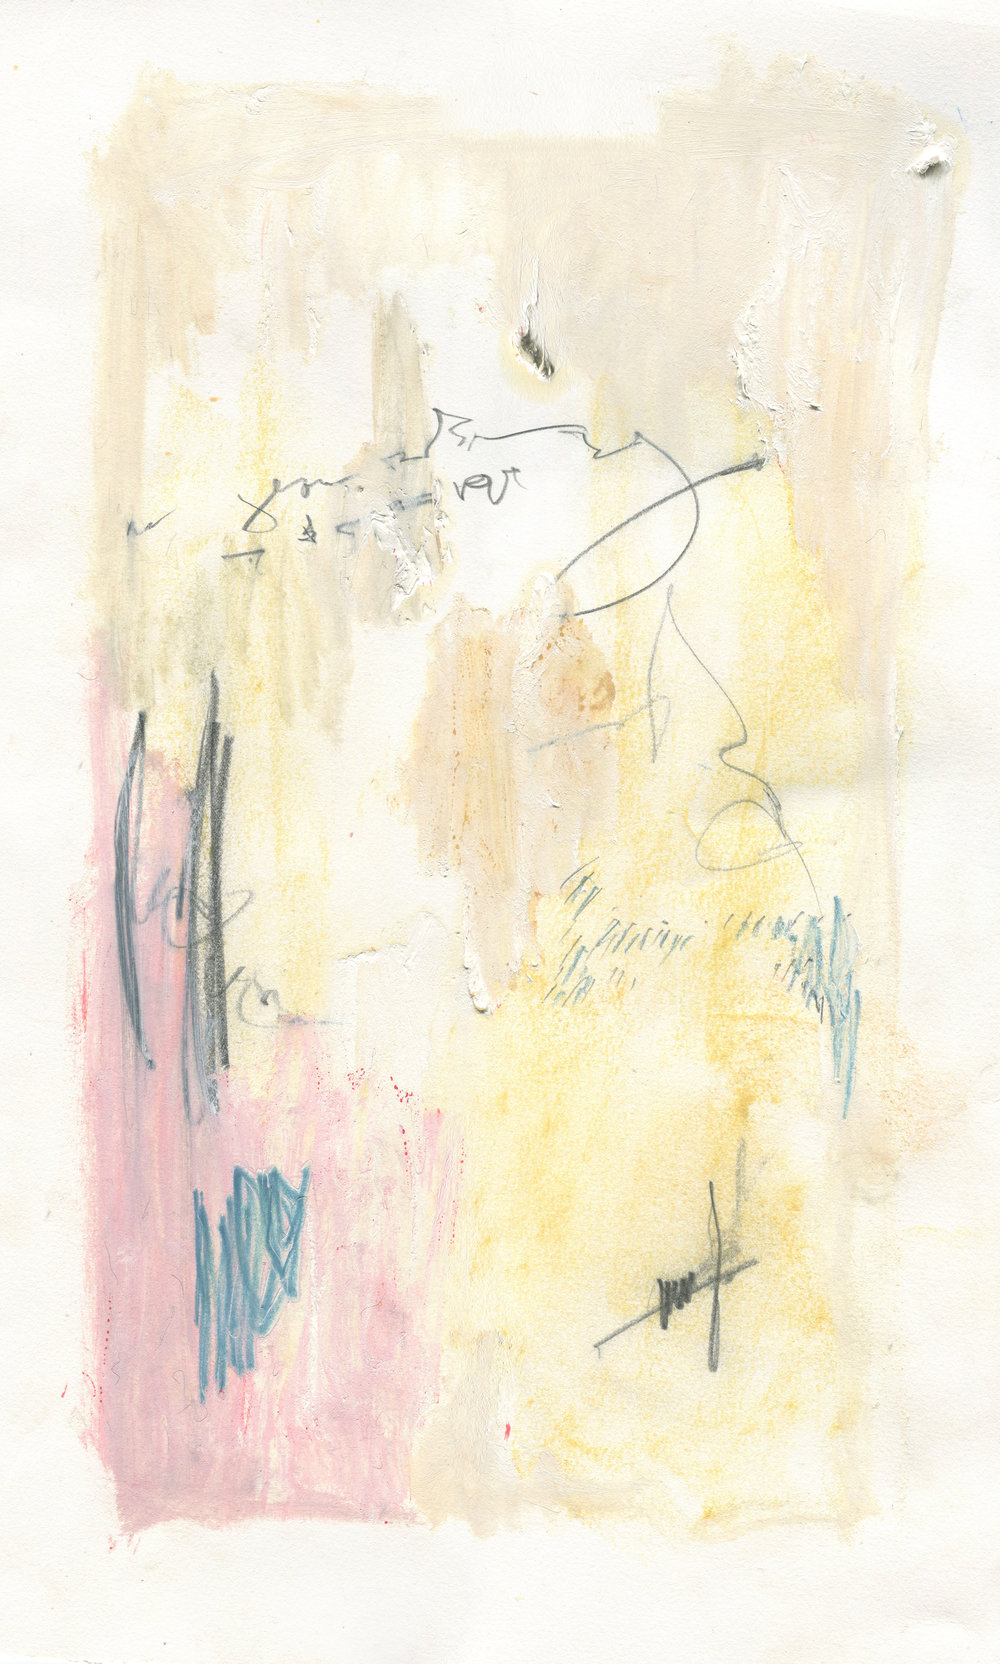 Breathing Heavy ; Breathless,  2016  Chalk Pastel, Graphite, Lithography Crayon, Crayon, and Acrylic on Paper